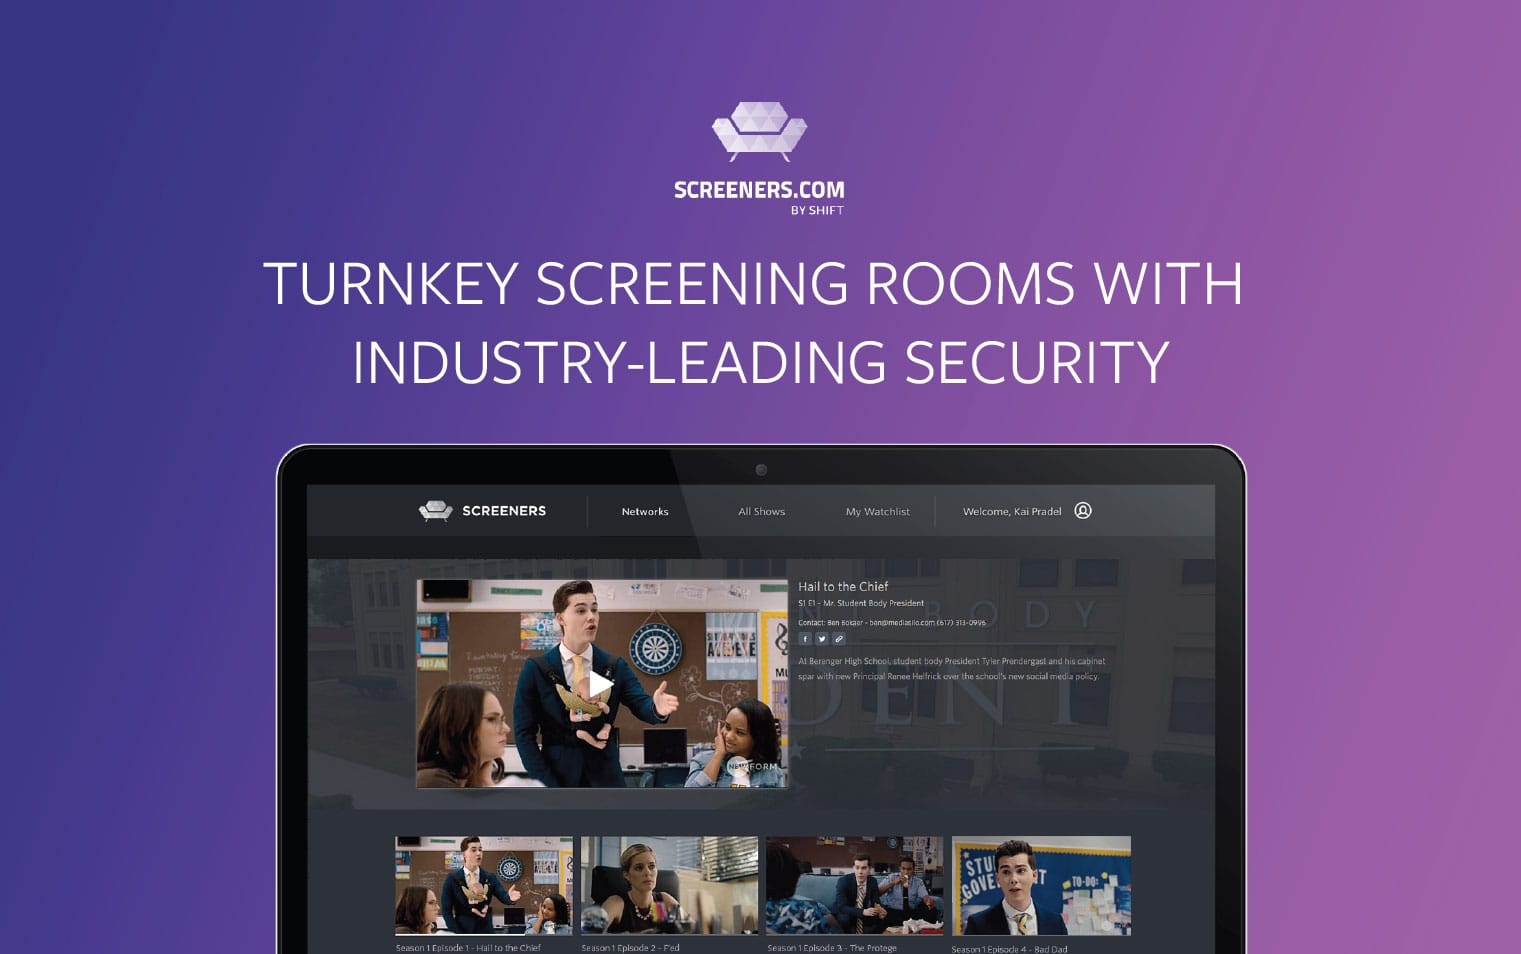 turnkey-screening-rooms